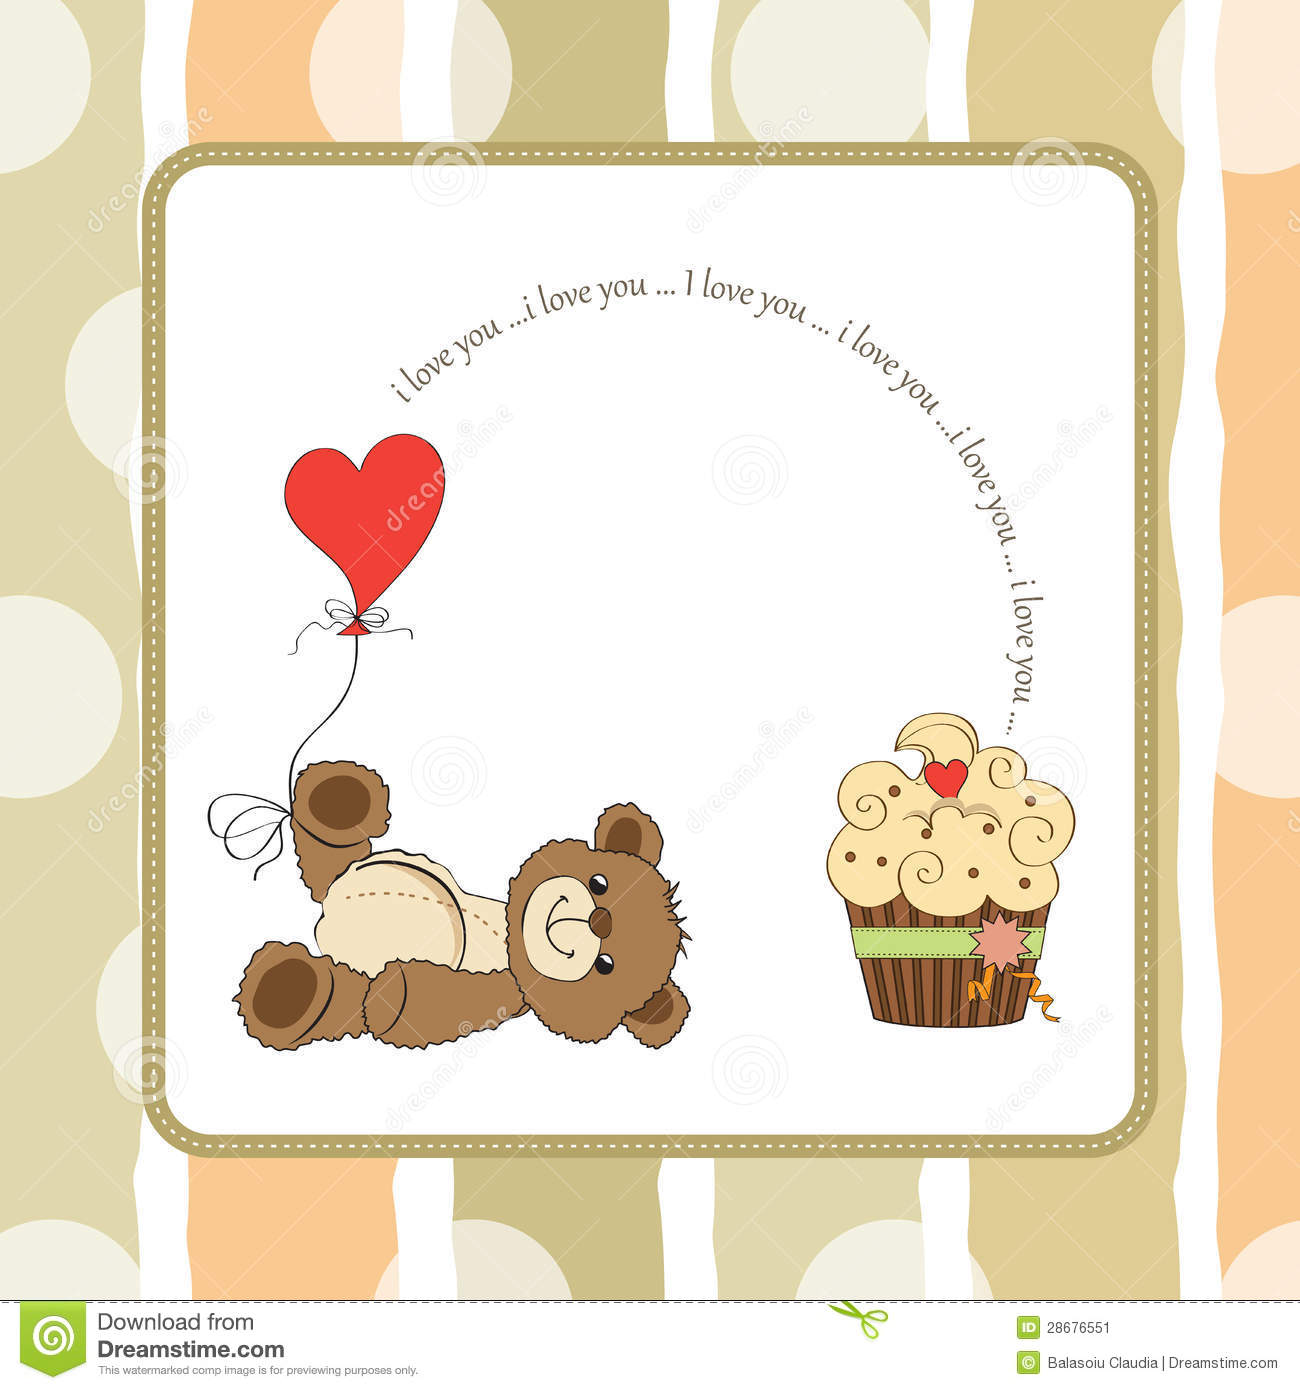 valentines day quotes 4 mom teddybear - Cute Love Card With Teddy Bear Stock Image Image